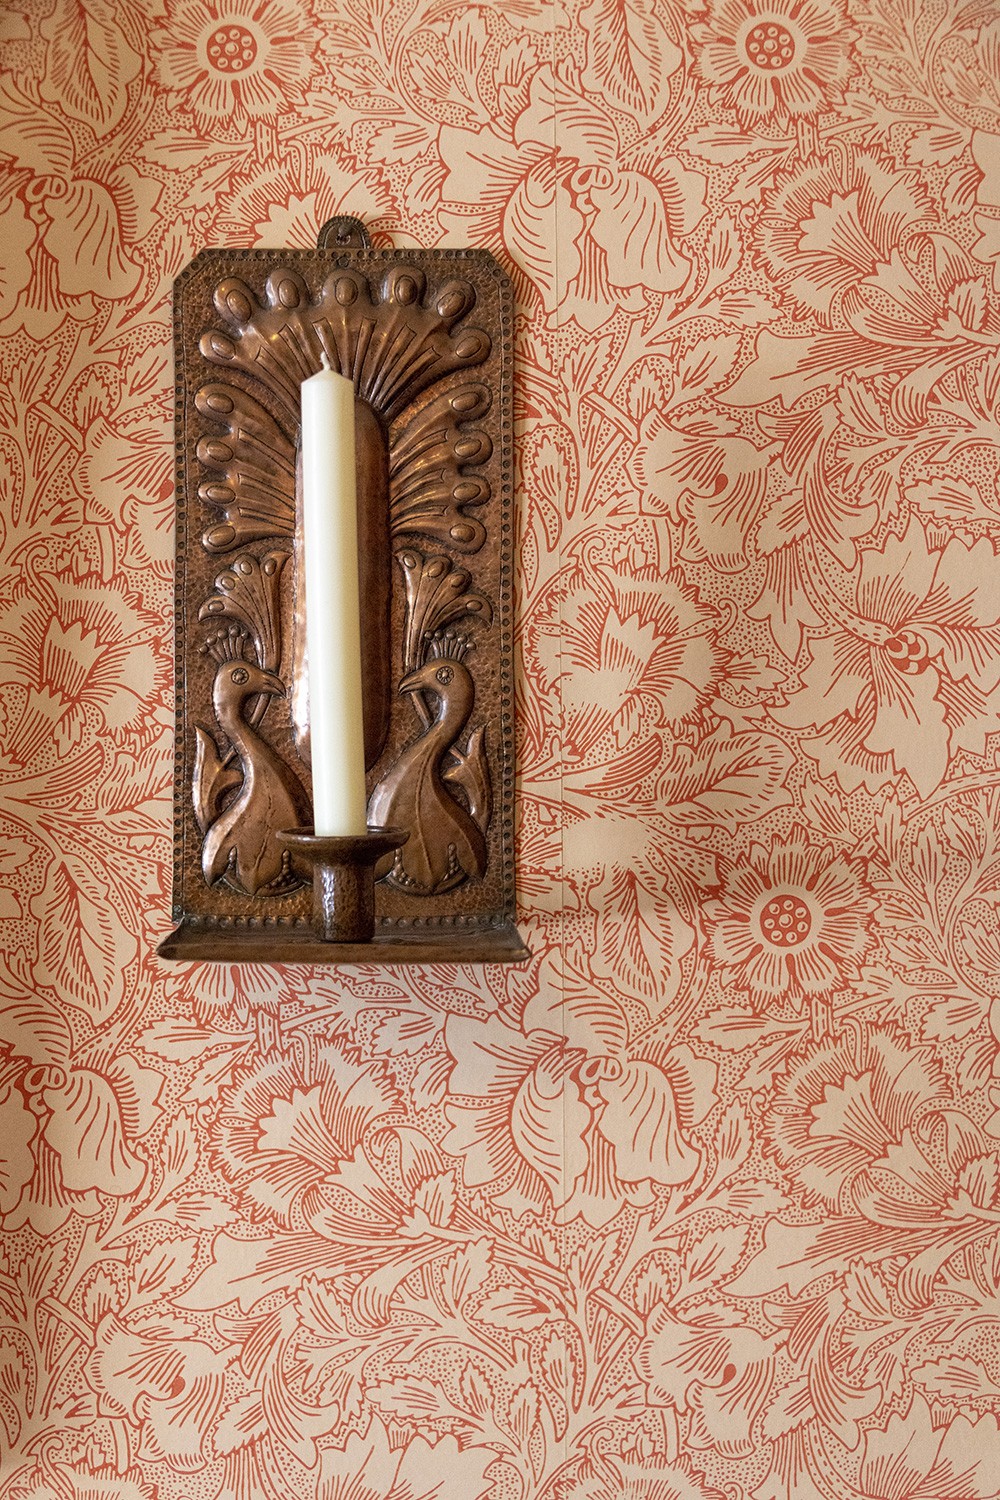 National Trust Standen House Interiors Photography - 180414wc850107